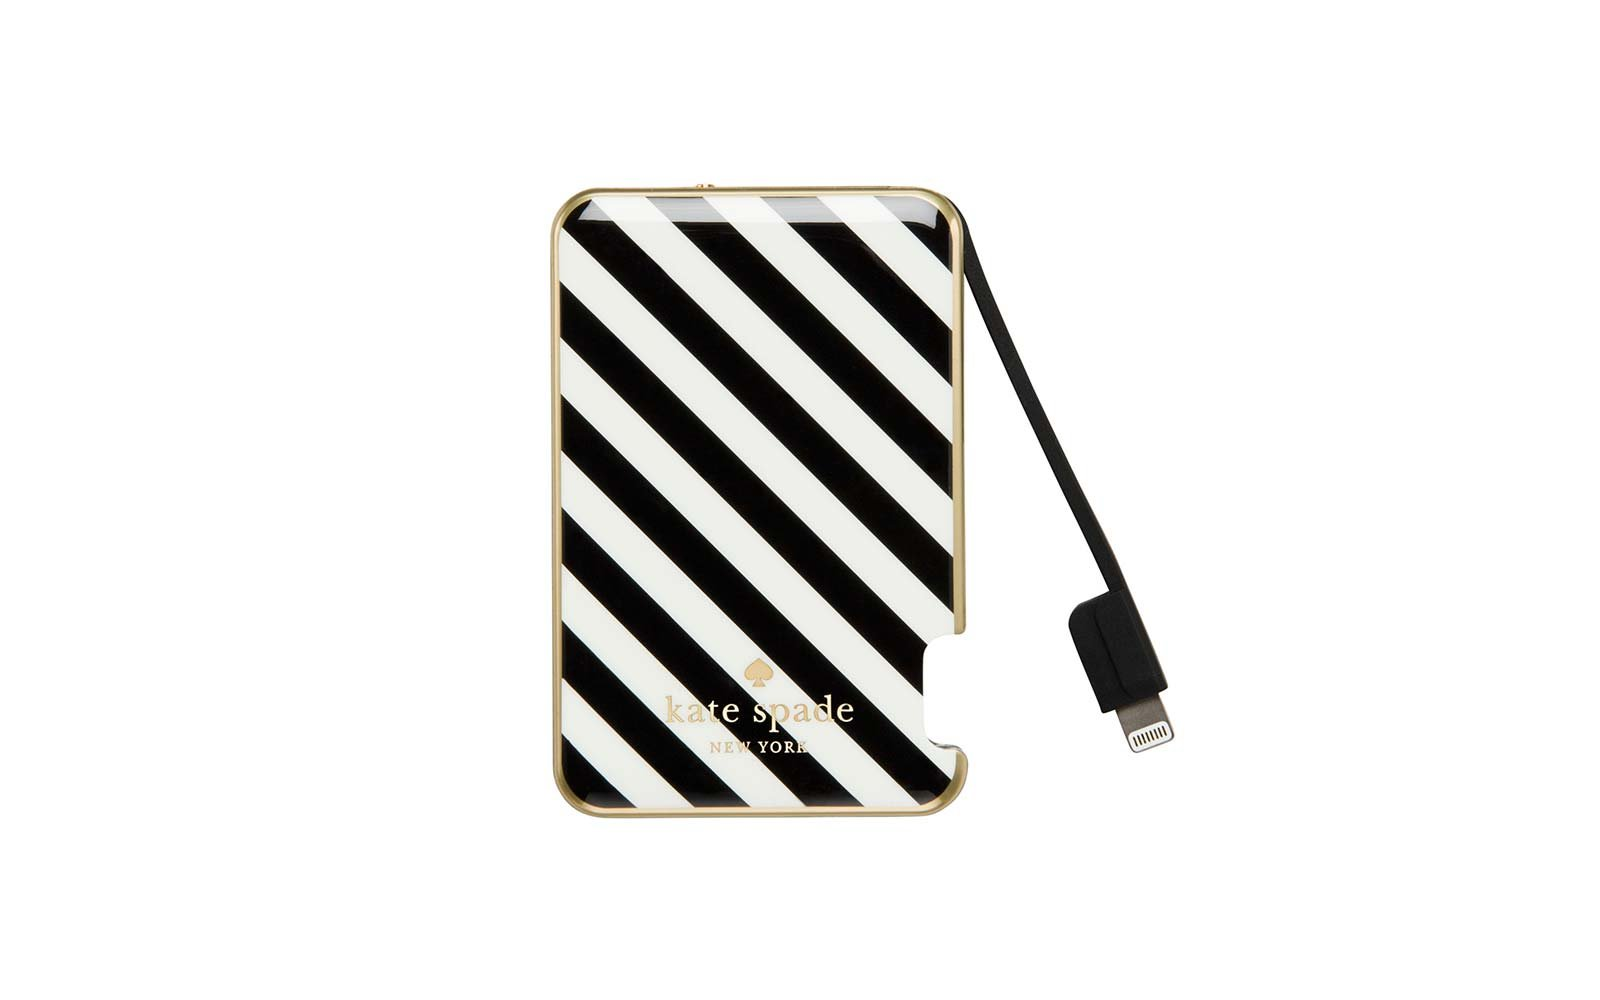 Travel Portable Phone Battery Charger Kate Spade